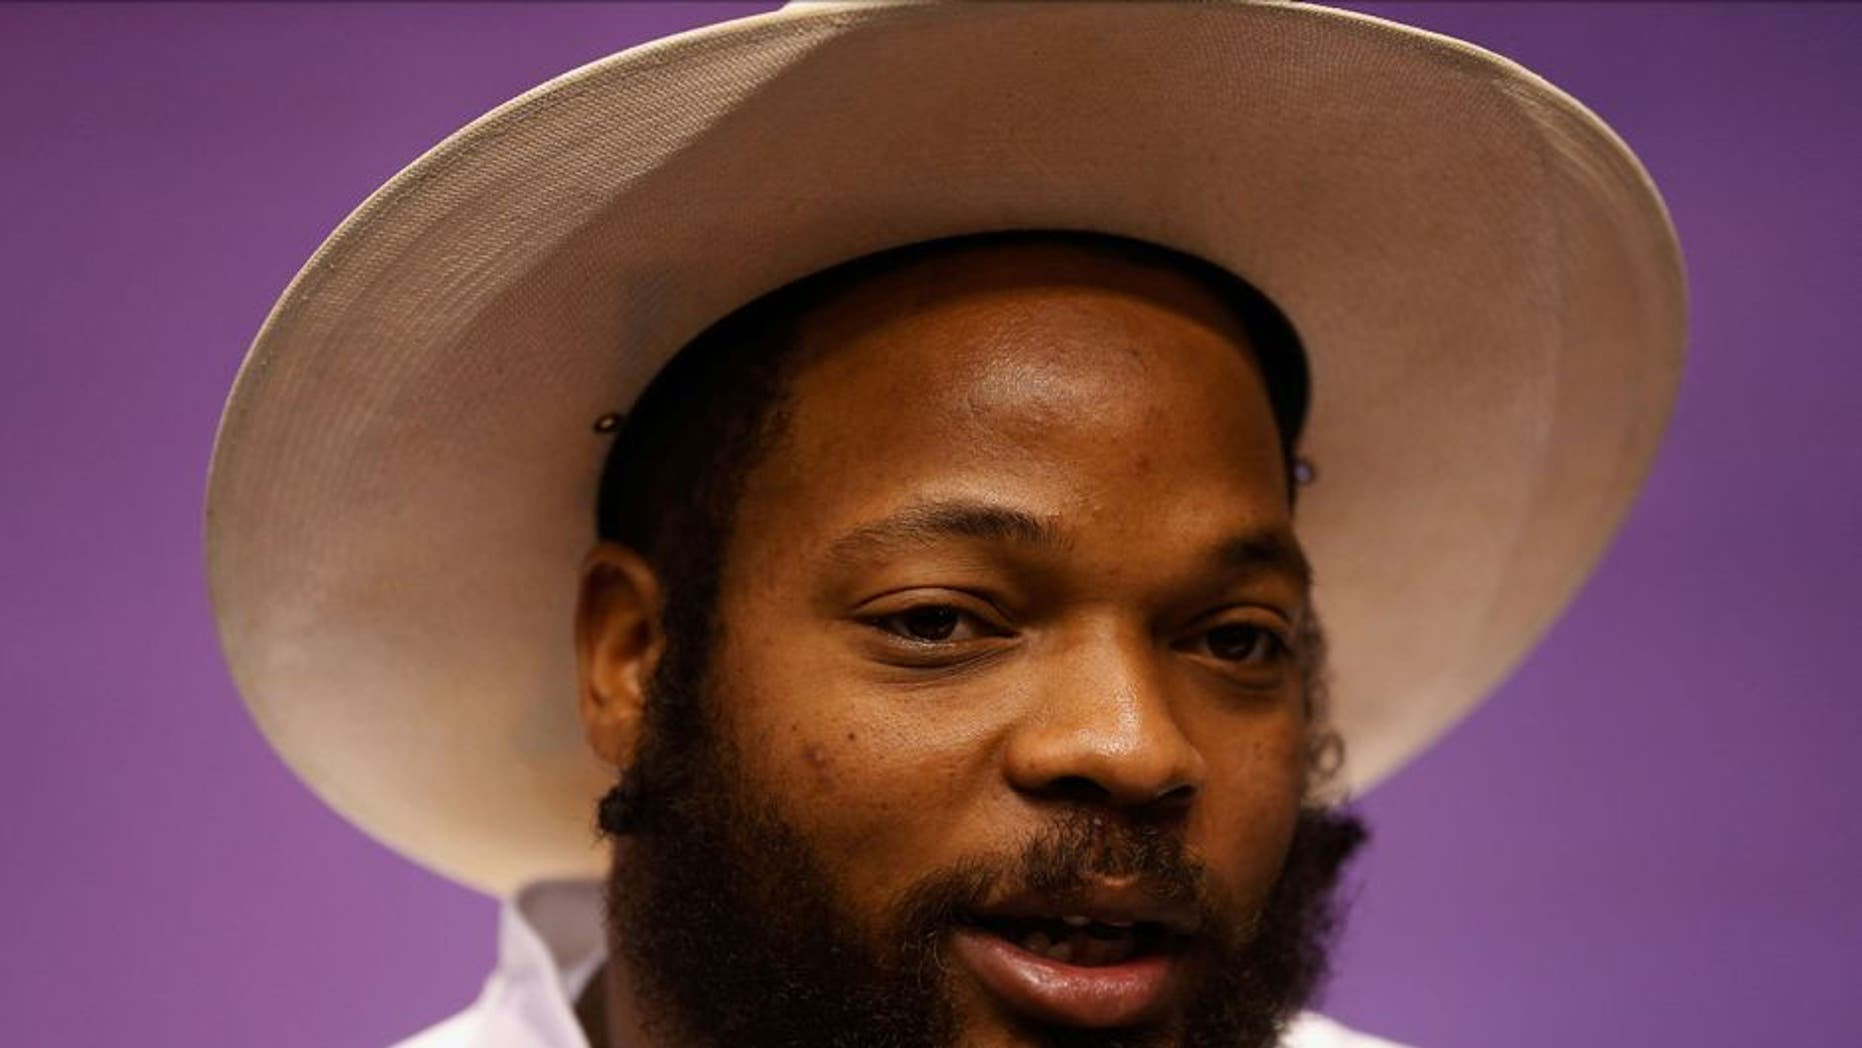 PHOENIX, AZ - JANUARY 27: Michael Bennett #72 of the Seattle Seahawks addresses the media at Super Bowl XLIX Media Day Fueled by Gatorade inside U.S. Airways Center on January 27, 2015 in Phoenix, Arizona. (Photo by Christian Petersen/Getty Images)